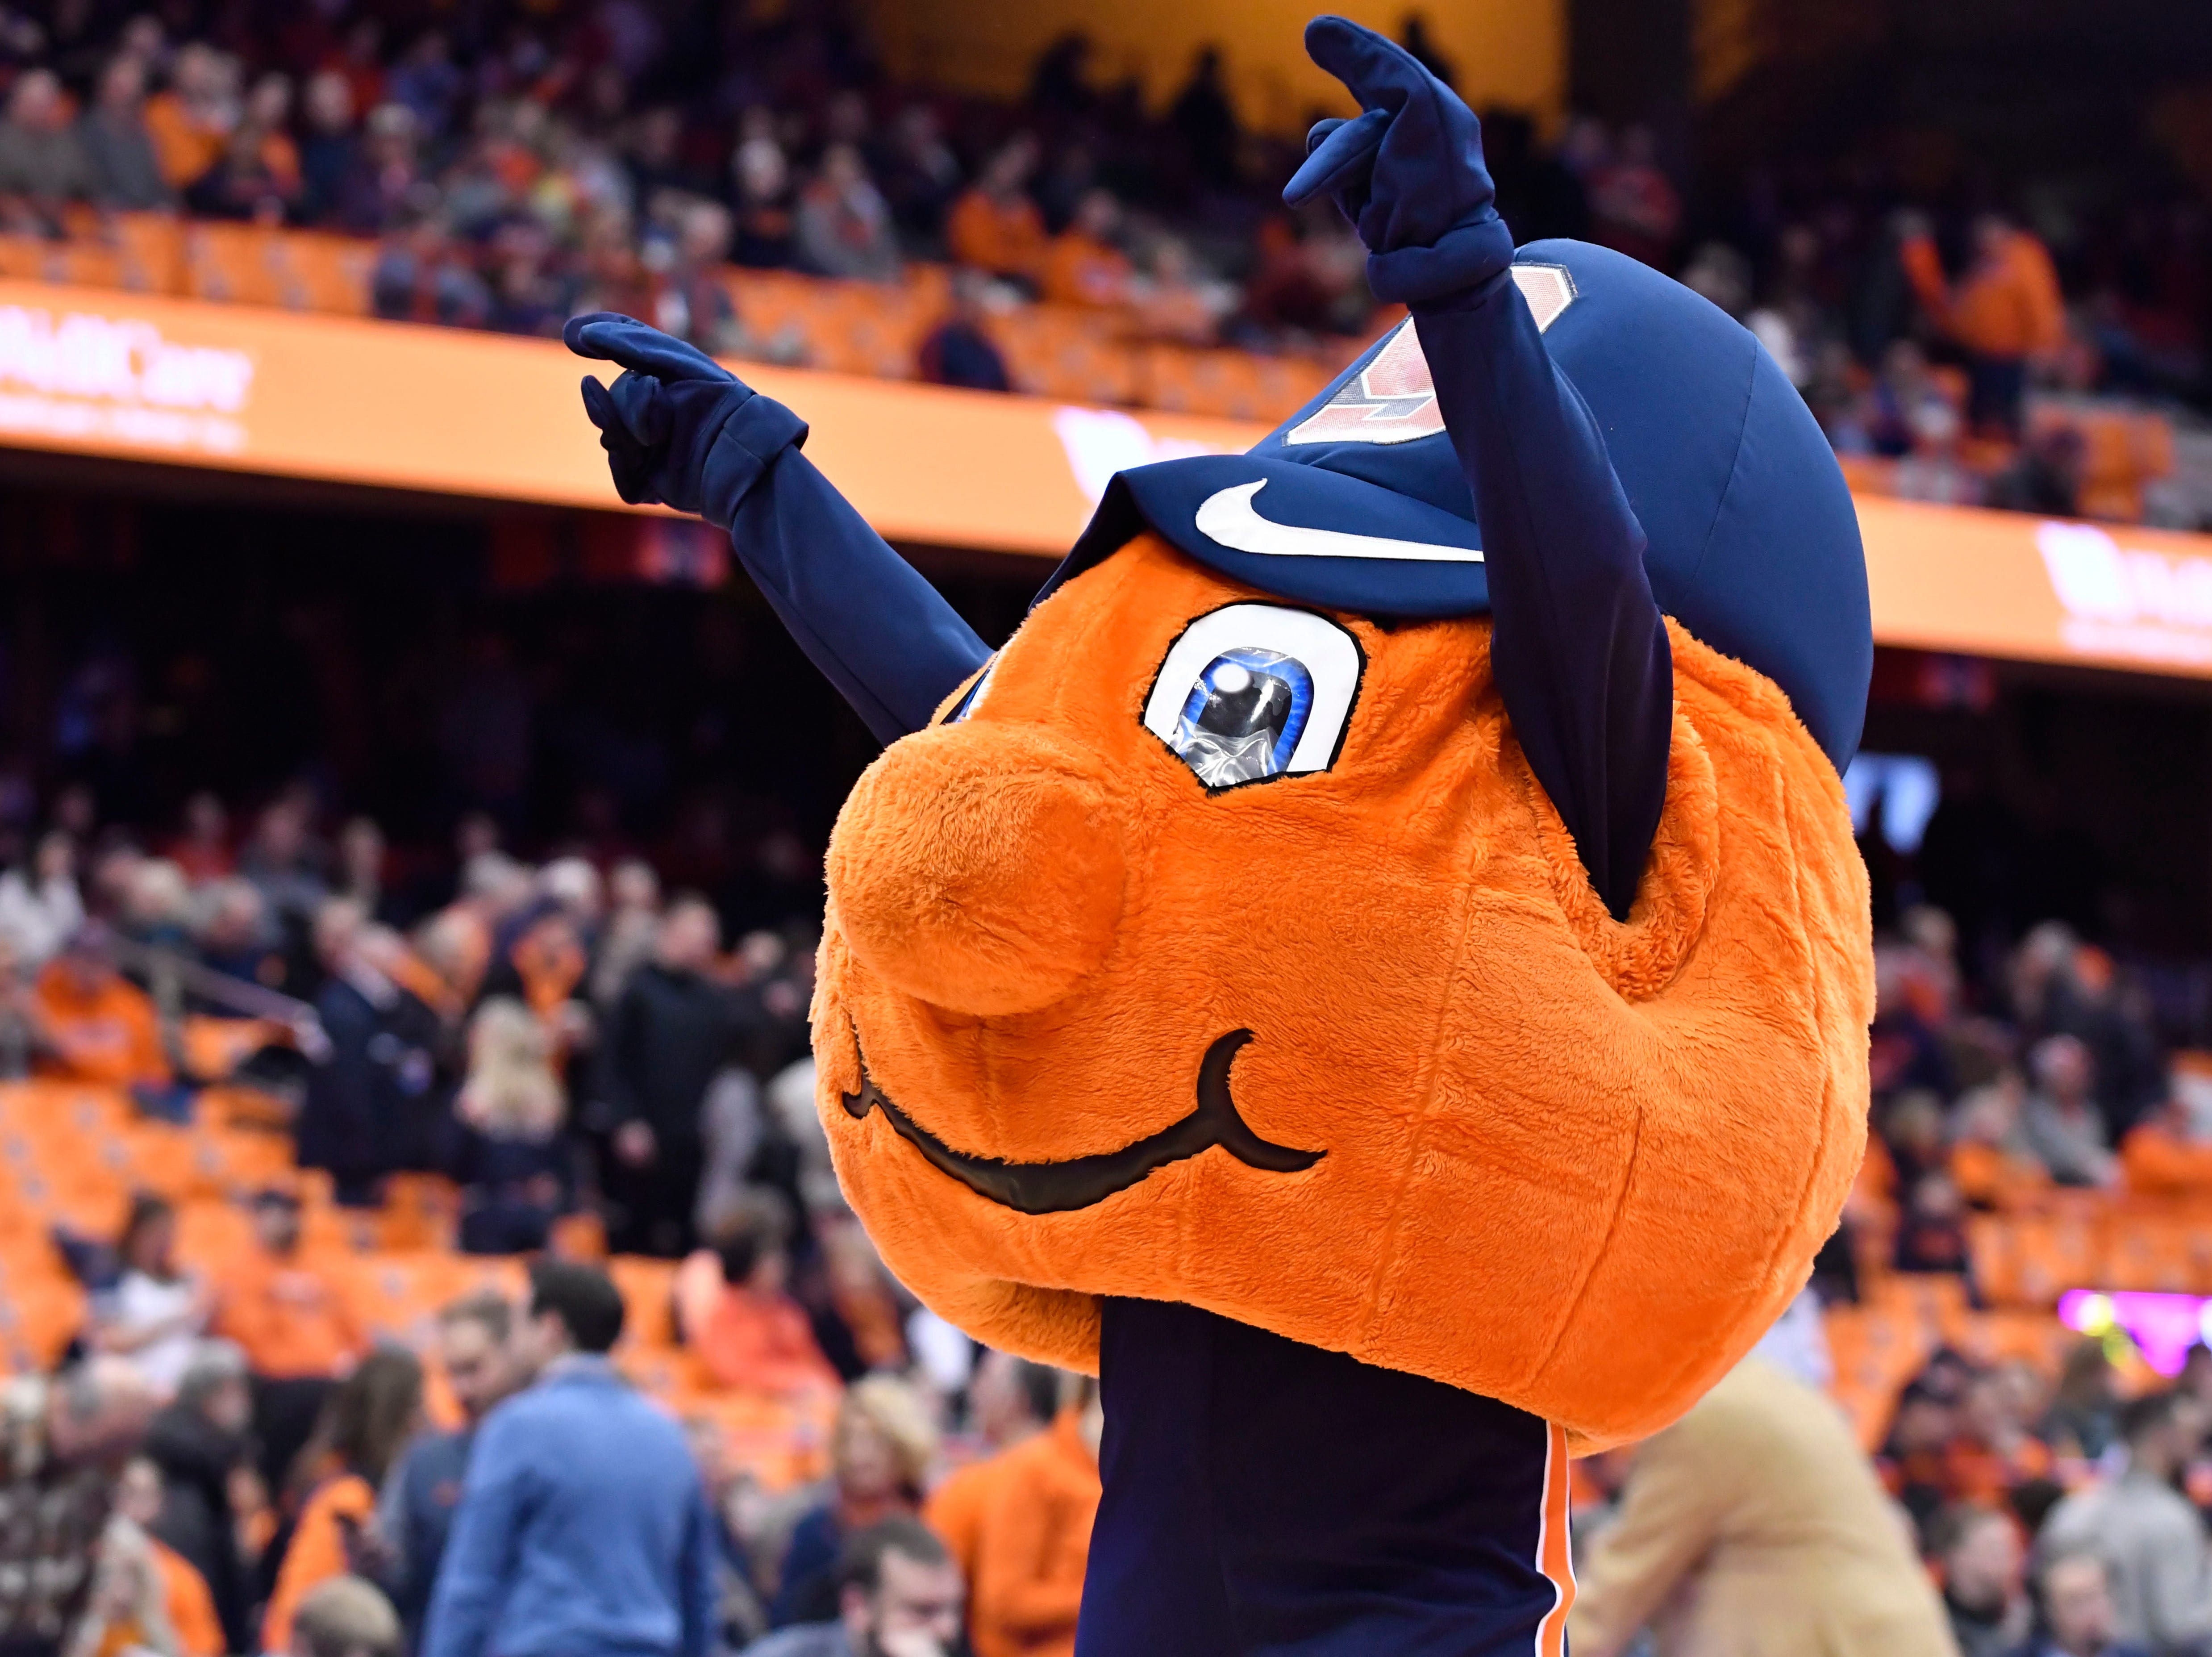 Feb 5, 2019; Syracuse, NY, USA; Otto the Syracuse Orange mascot waves to the crowd prior to the game between the Syracuse Orange and the Florida State Seminoles at the Carrier Dome. Mandatory Credit: Mark Konezny-USA TODAY Sports